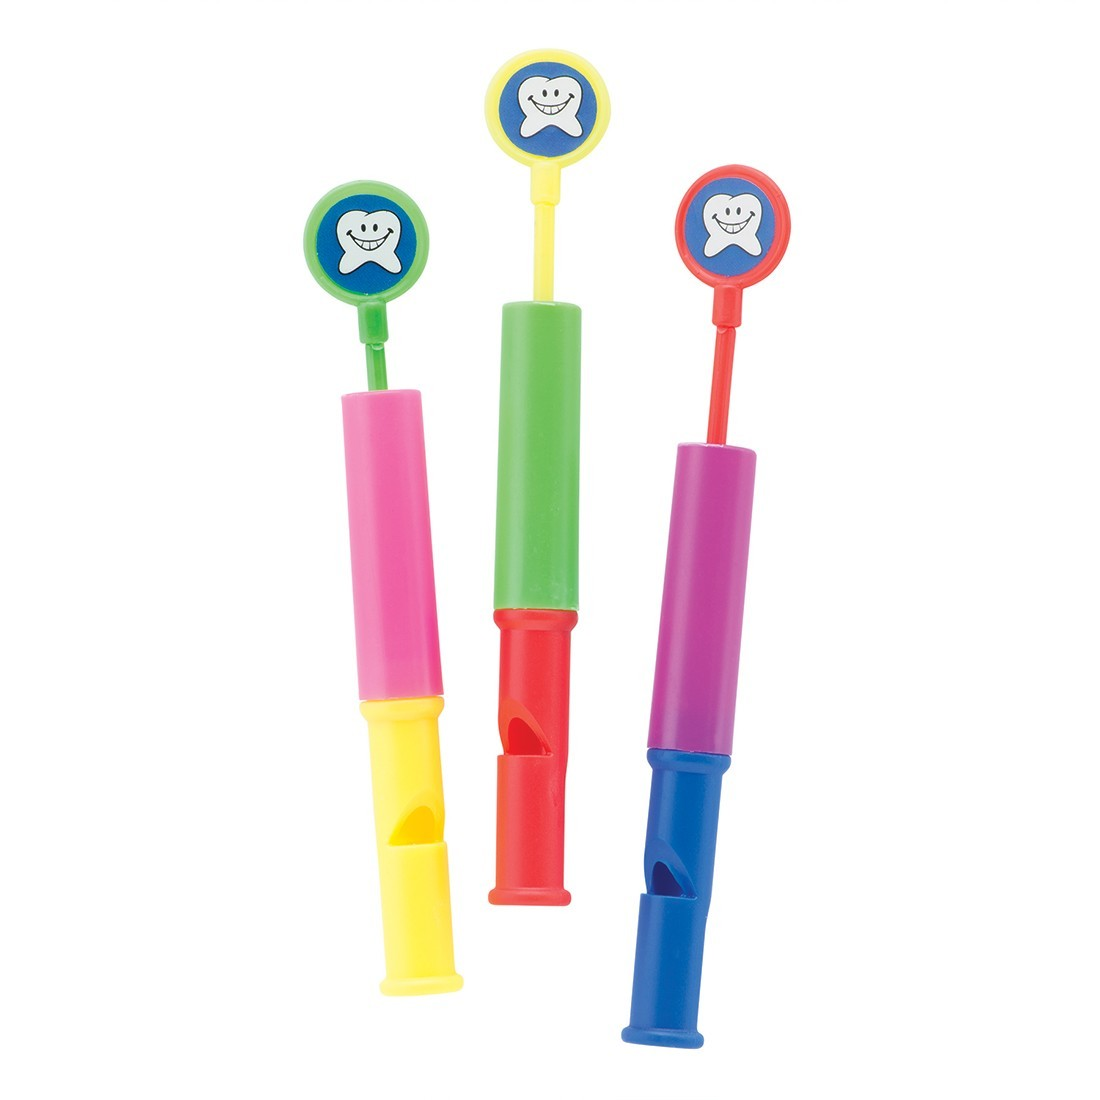 Happy Tooth Slide Whistles   [image]